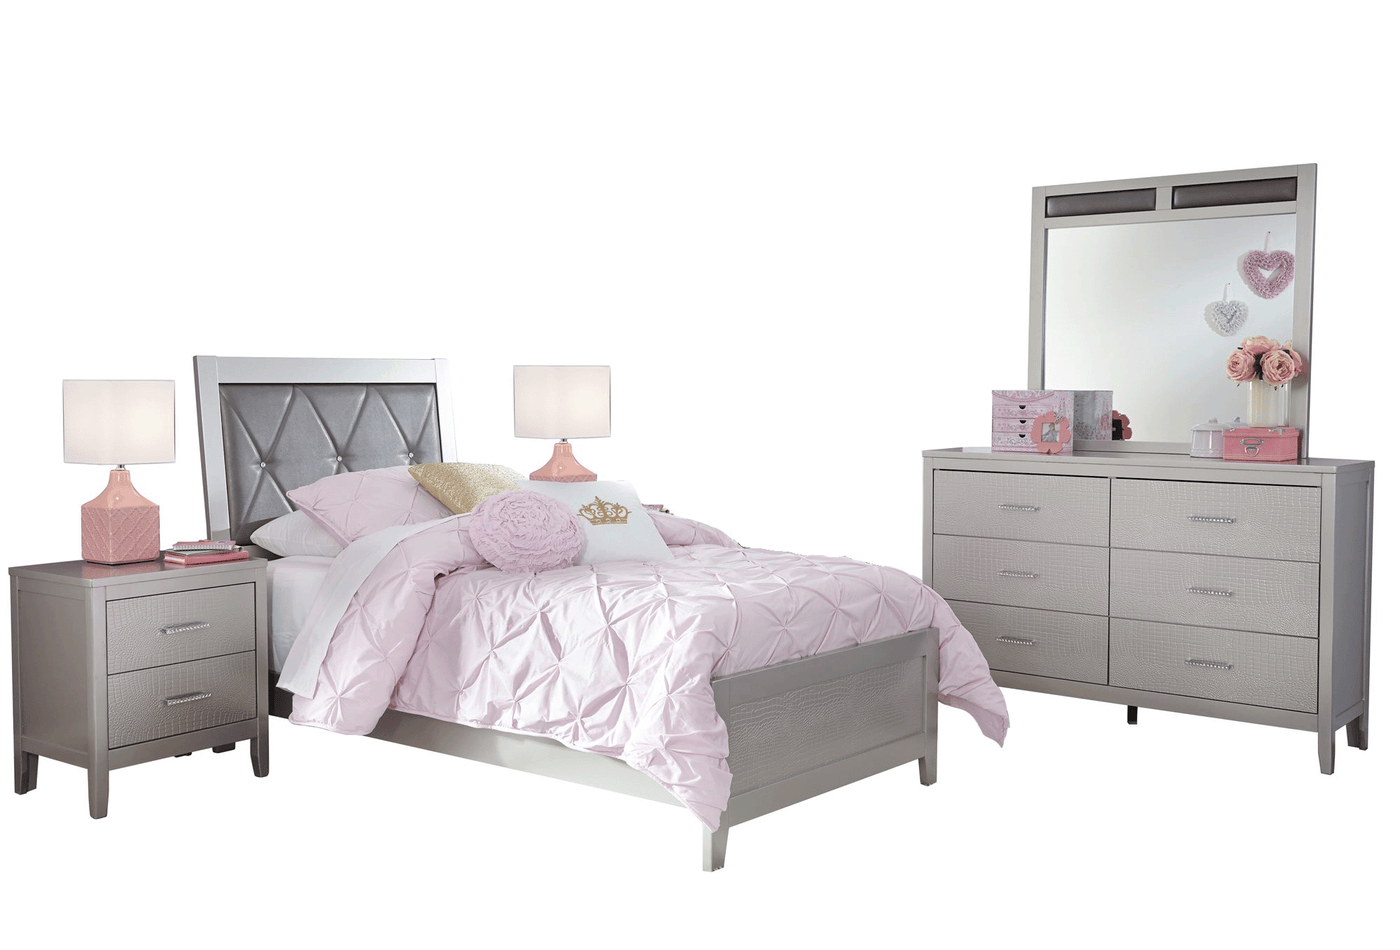 Ashley Olivet 5 PC Bedroom Set Twin Panel Bed Two Nightstand Dresser Mirror  in Silver